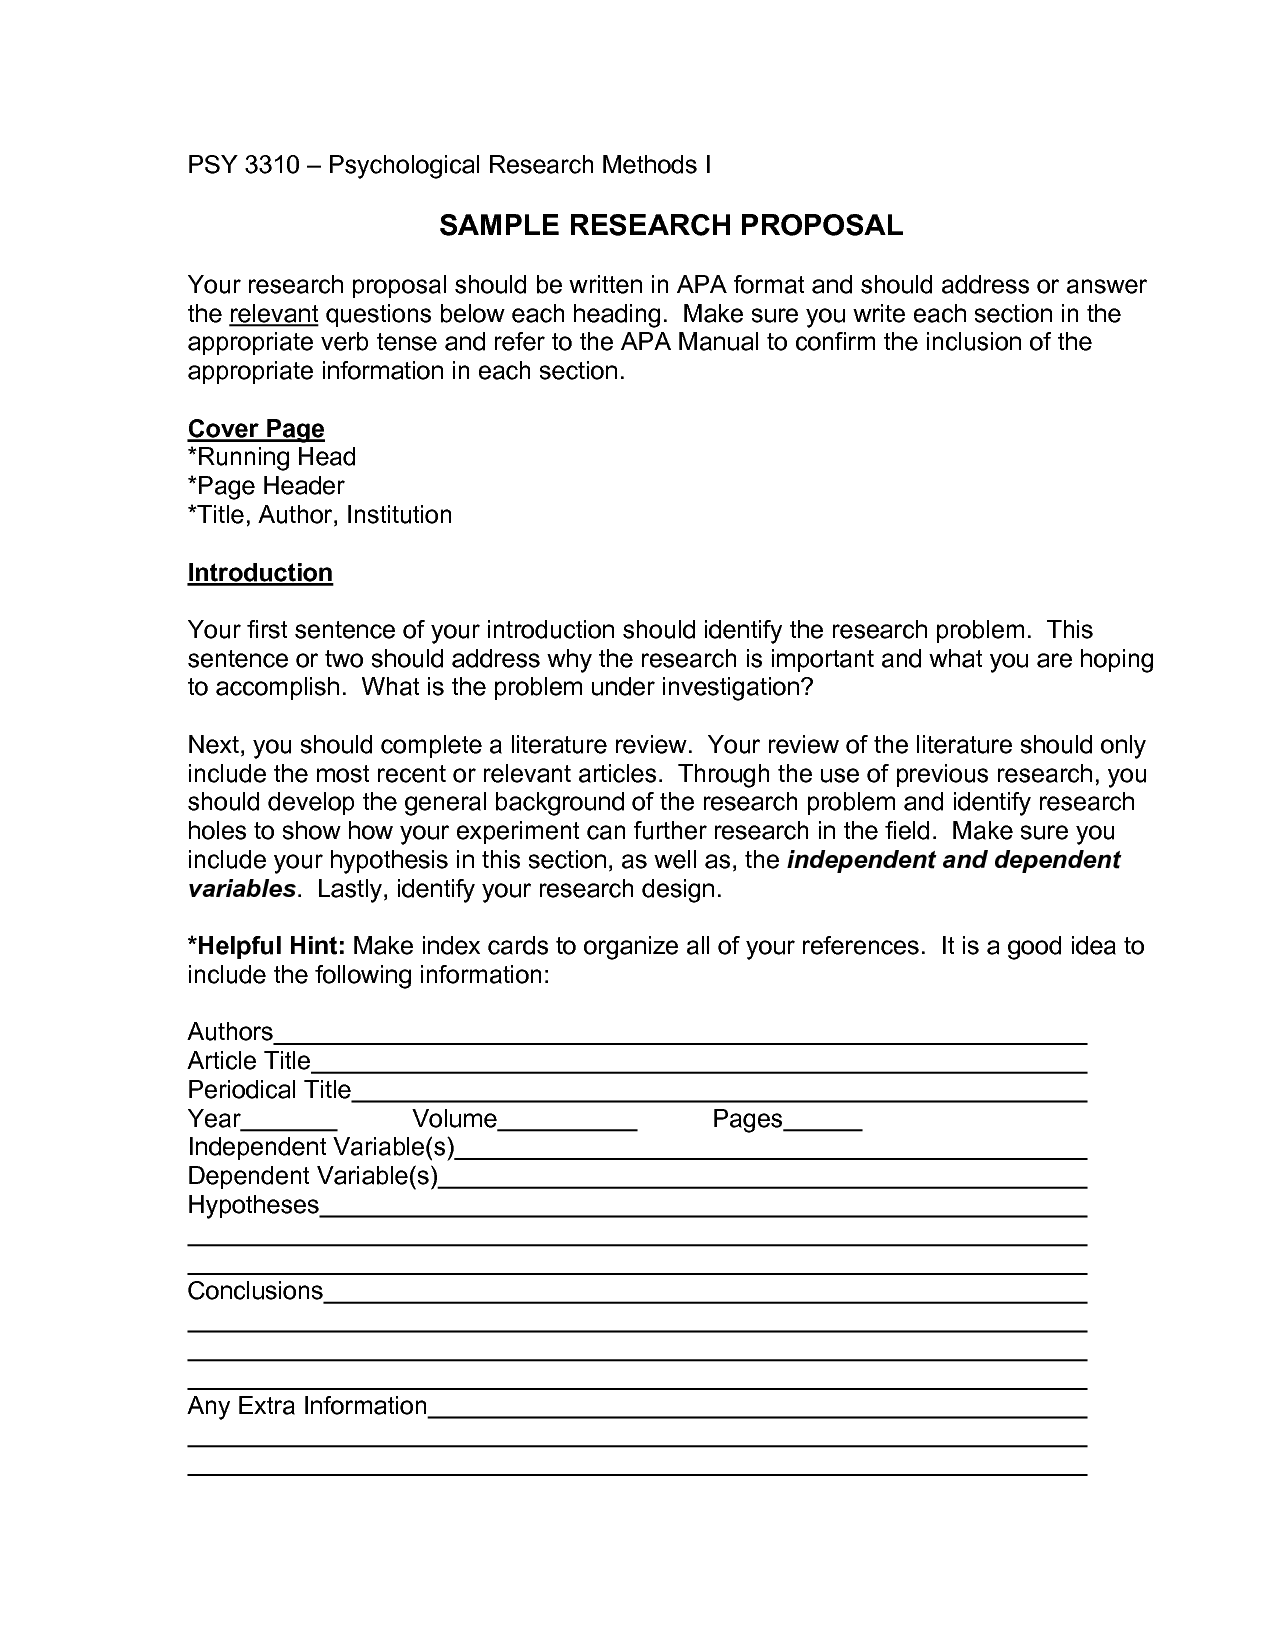 012 Research Paper Proposalpa Format Example 542911 How To Write Amazing A Proposal Apa Full